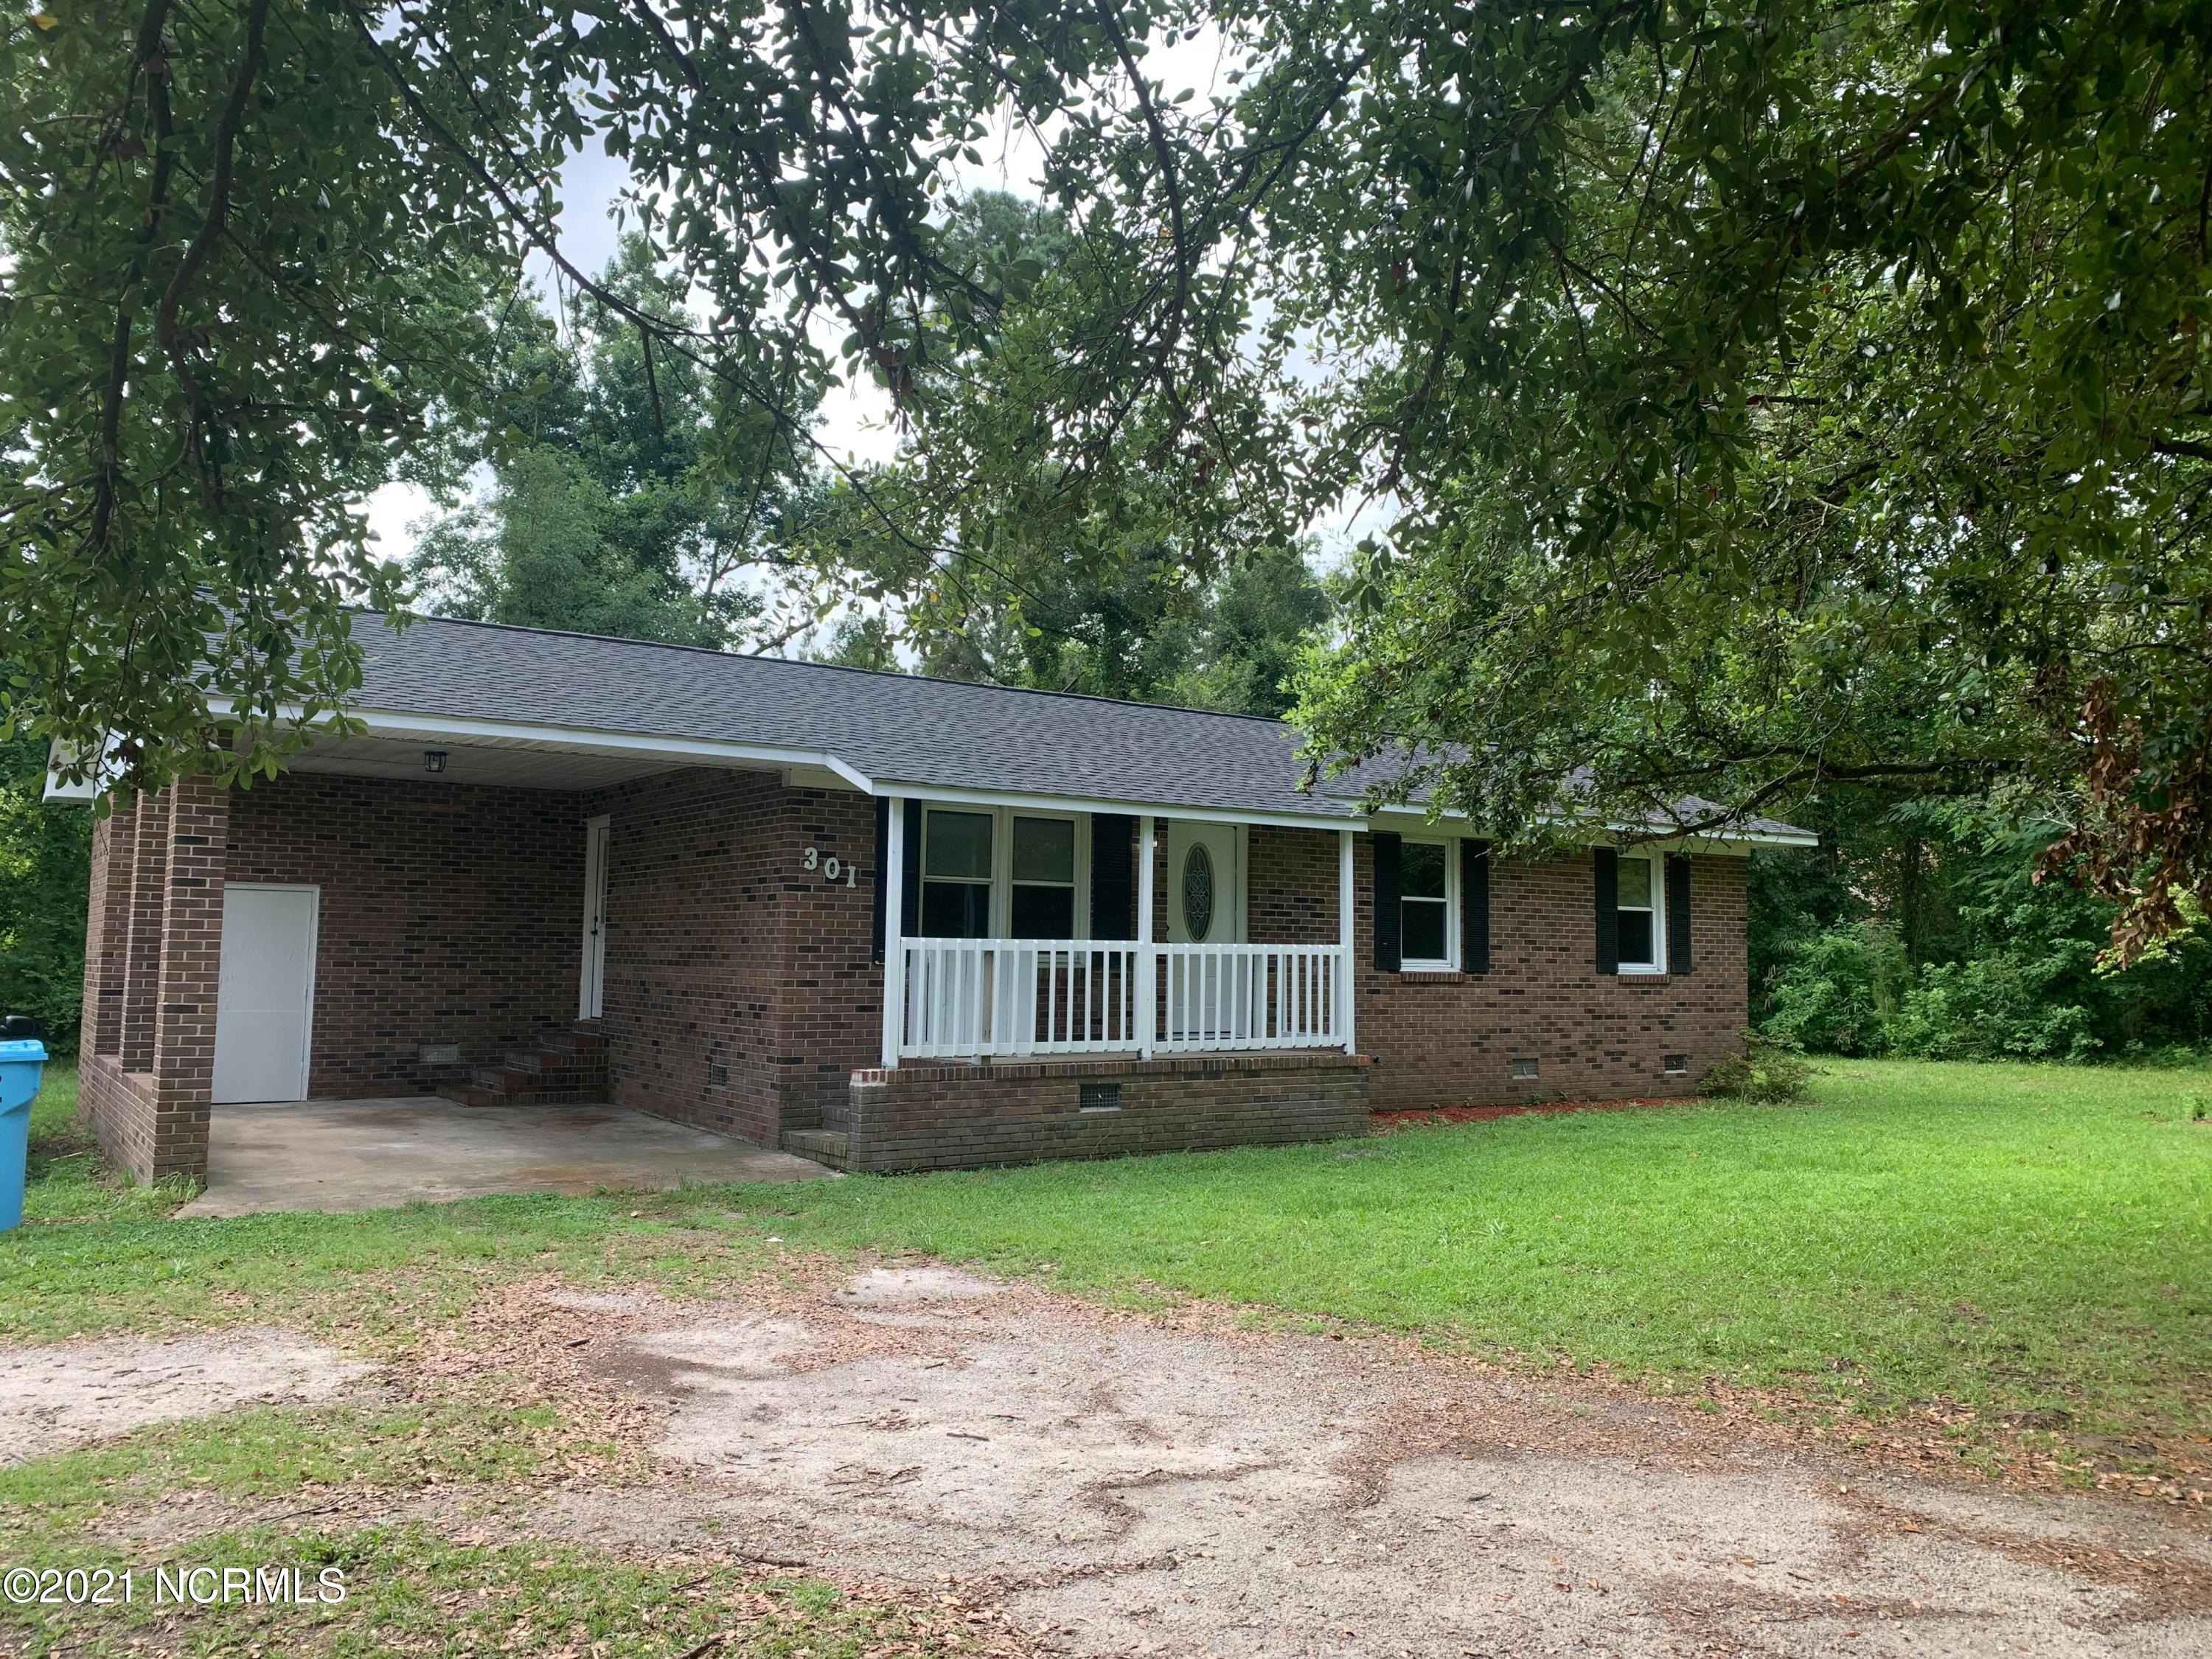 Nestled on .66 acres, this brick home allows plenty of room for the kids and pets to play! Enjoy quiet country living just minutes from Richlands. Beautiful shade trees surround the property! Must see to appreciate!